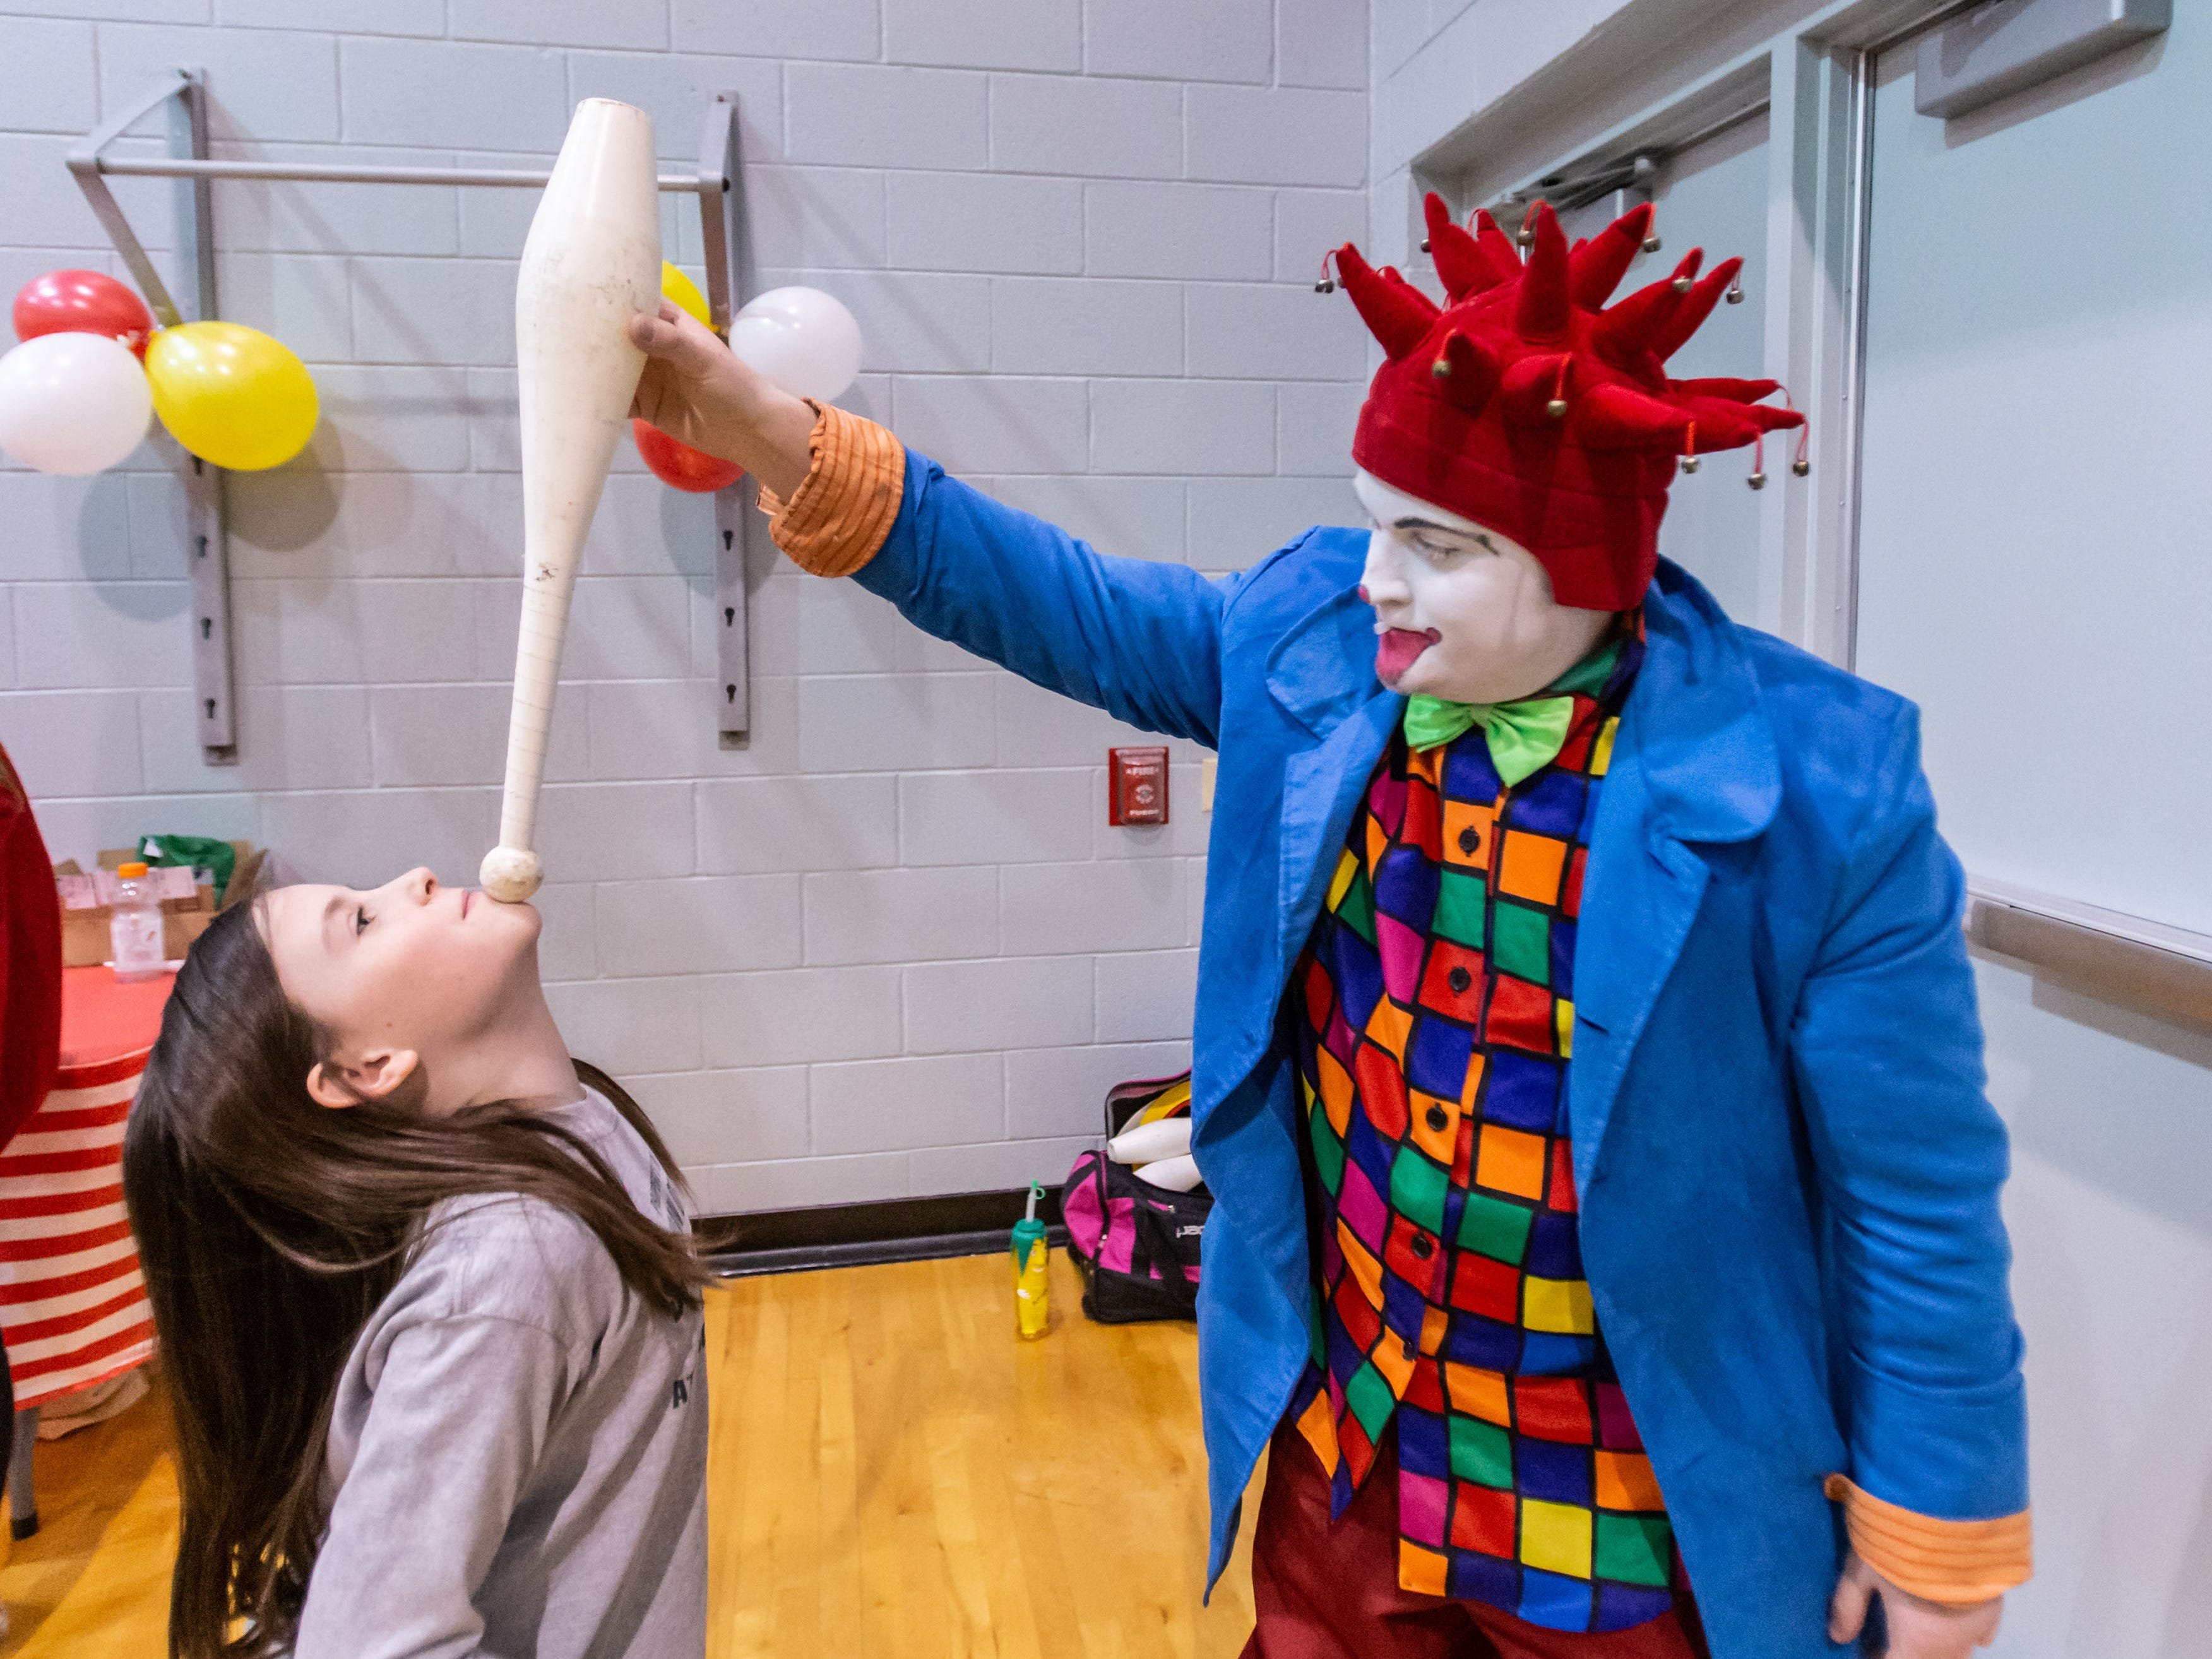 Jason Beaumont of West Allis teaches Molly Flint, 9, of Oconomowoc how to balance a juggler's pin during the 9th annual St. Joan of Arc Carnival in Nashotah on Friday, Feb. 1, 2019. The family-friendly event features carnival games, food, face painting, balloon animals, a fortune teller and more.